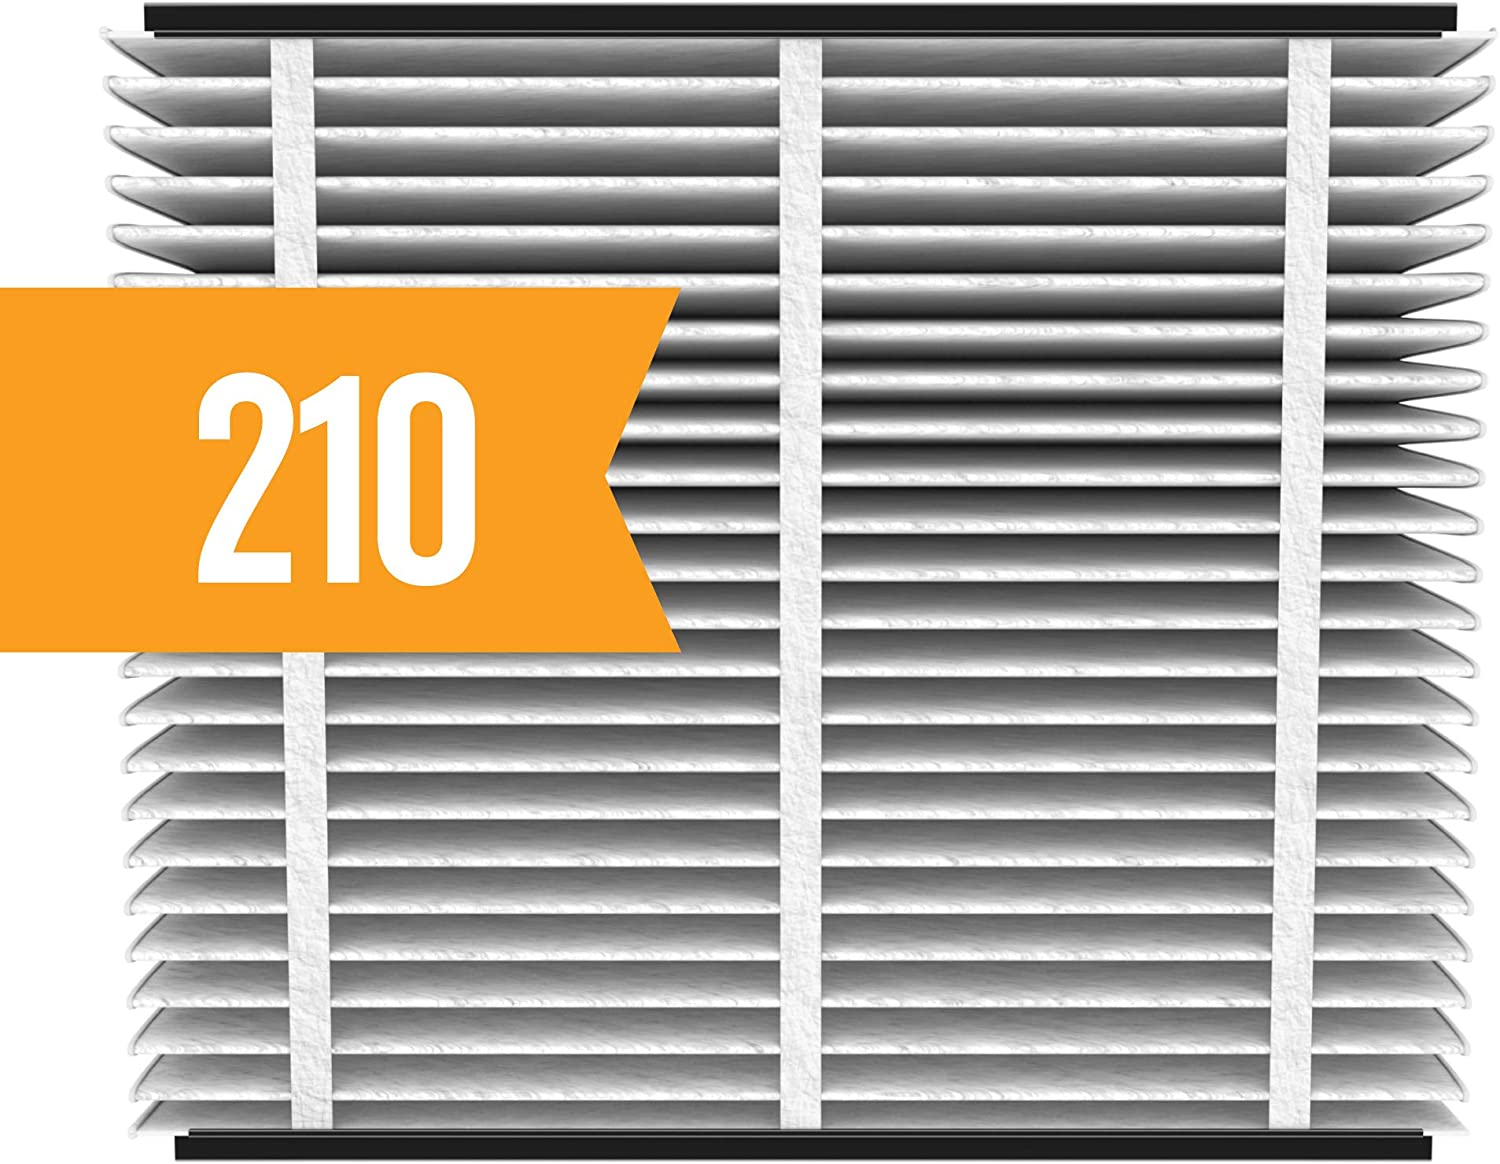 Clean Air Filter >> Aprilaire 210 Replacement Air Filter For Aprilaire Whole Home Air Purifiers Clean Air Dust Filter Merv 11 Pack Of 1